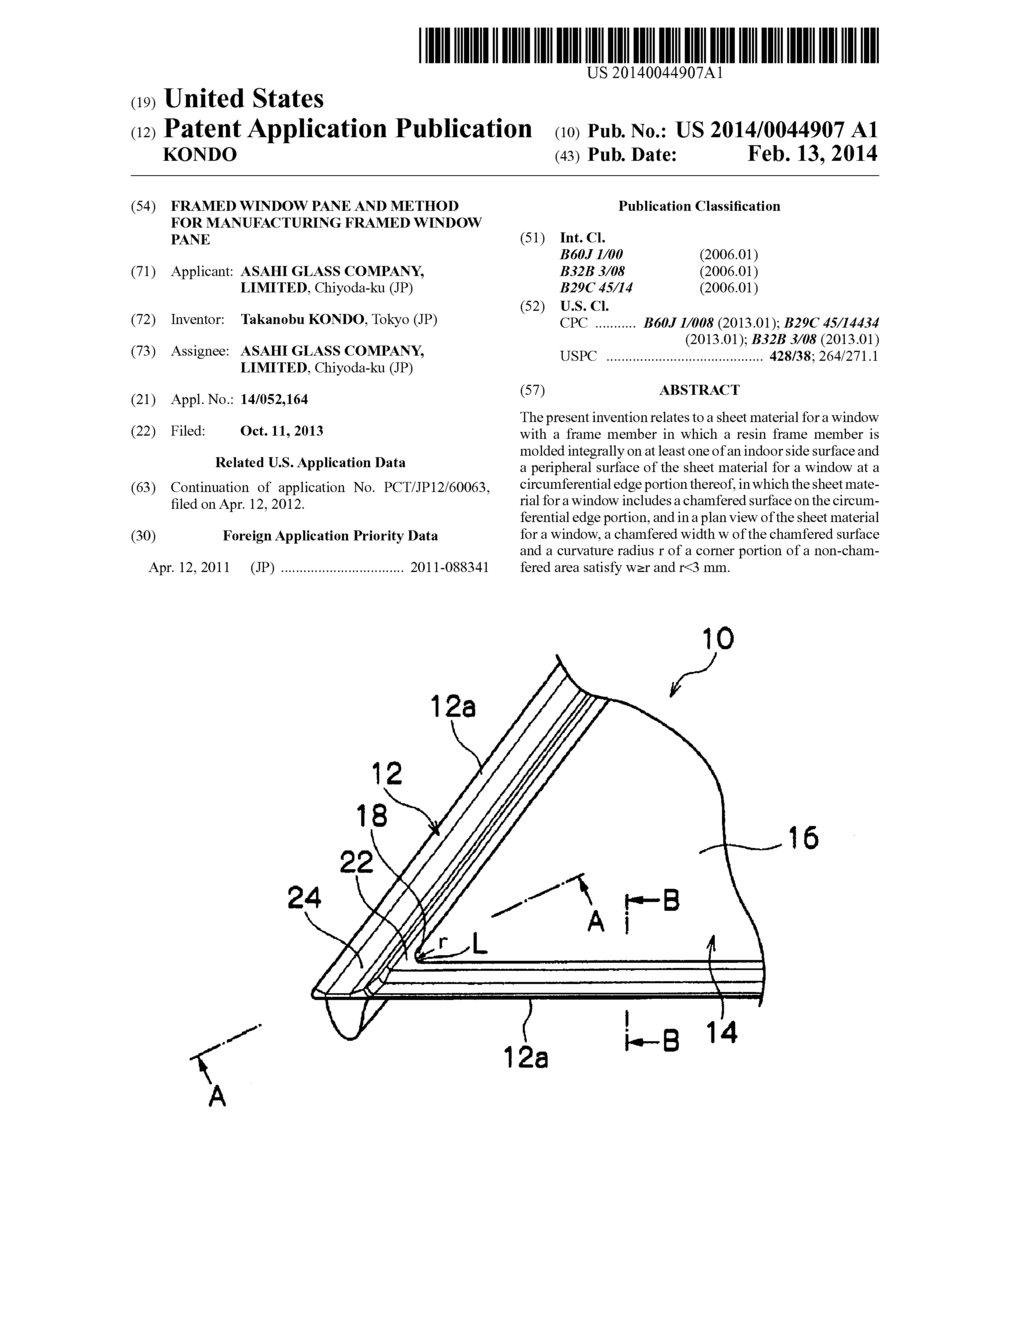 FRAMED WINDOW PANE AND METHOD FOR MANUFACTURING